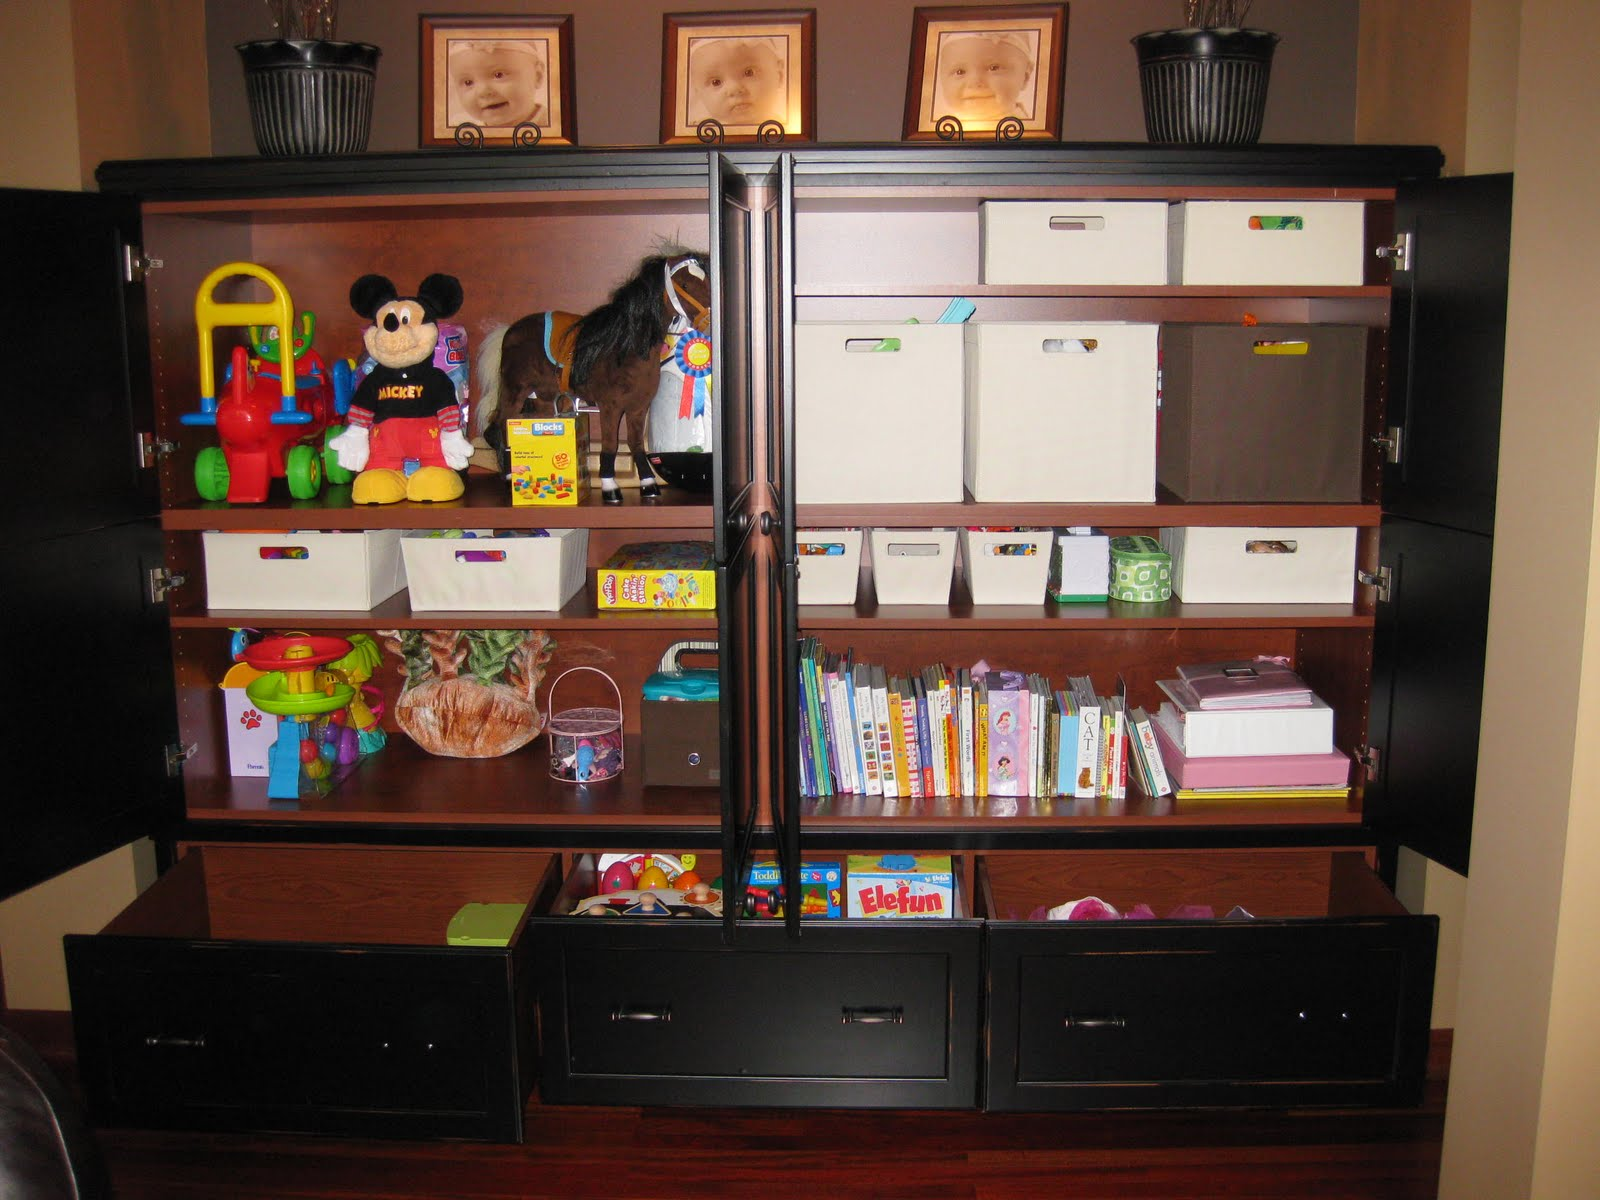 Elegant Thanks To Our Talented Friend Jesse For Building A Beautiful New Cabinet To  Hold Reeseu0027s Toys. We Love It! And Our Family Room Actually Resembles A  Family ...